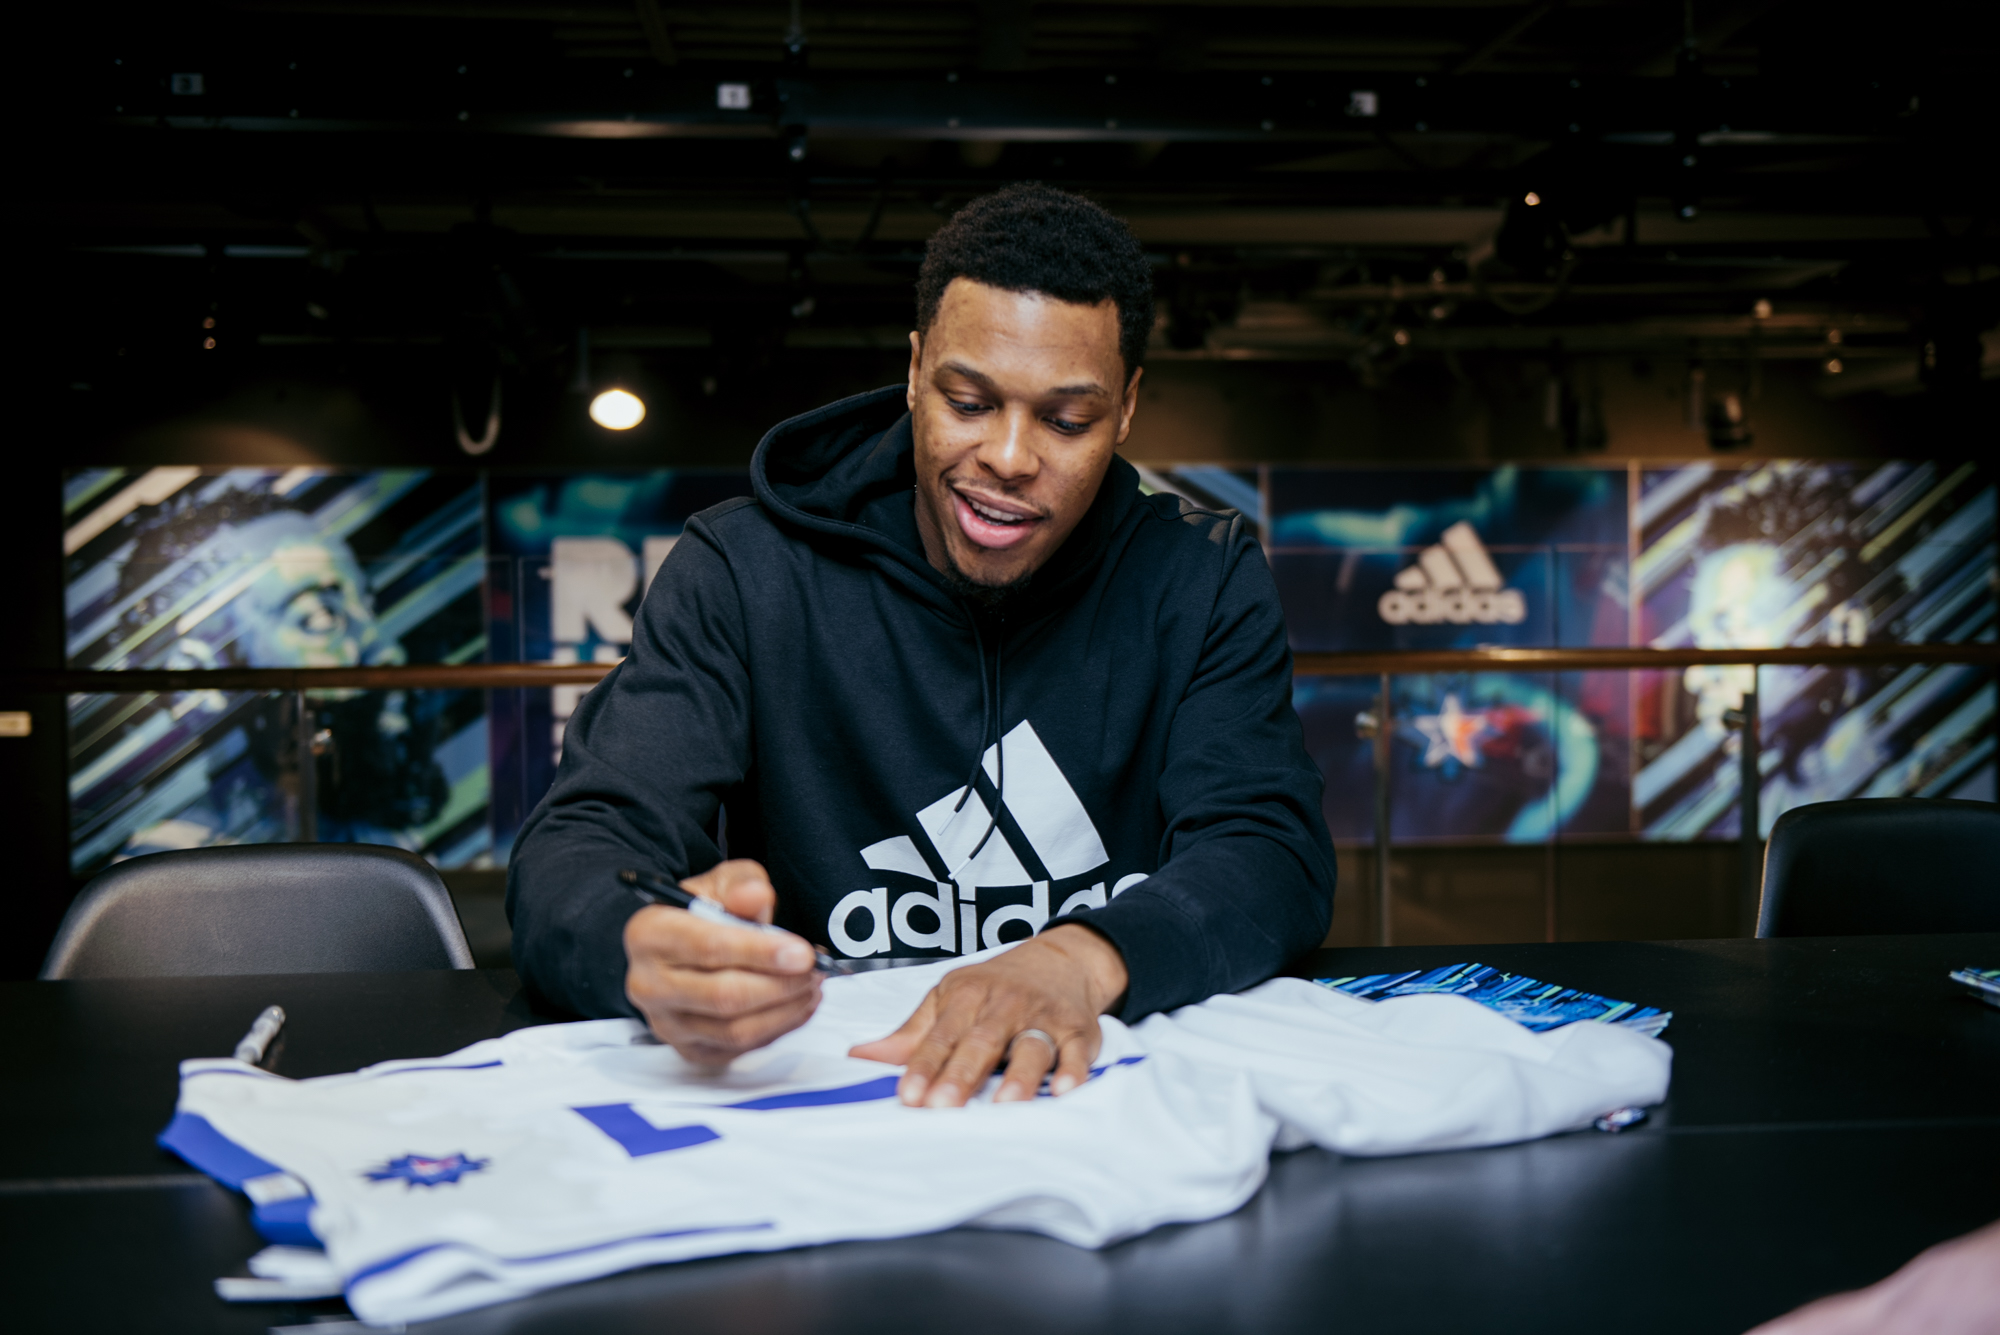 Kyle Lowry of the Toronto Raptors signs jerseys at the adidas flagship store in downtown Toronto.